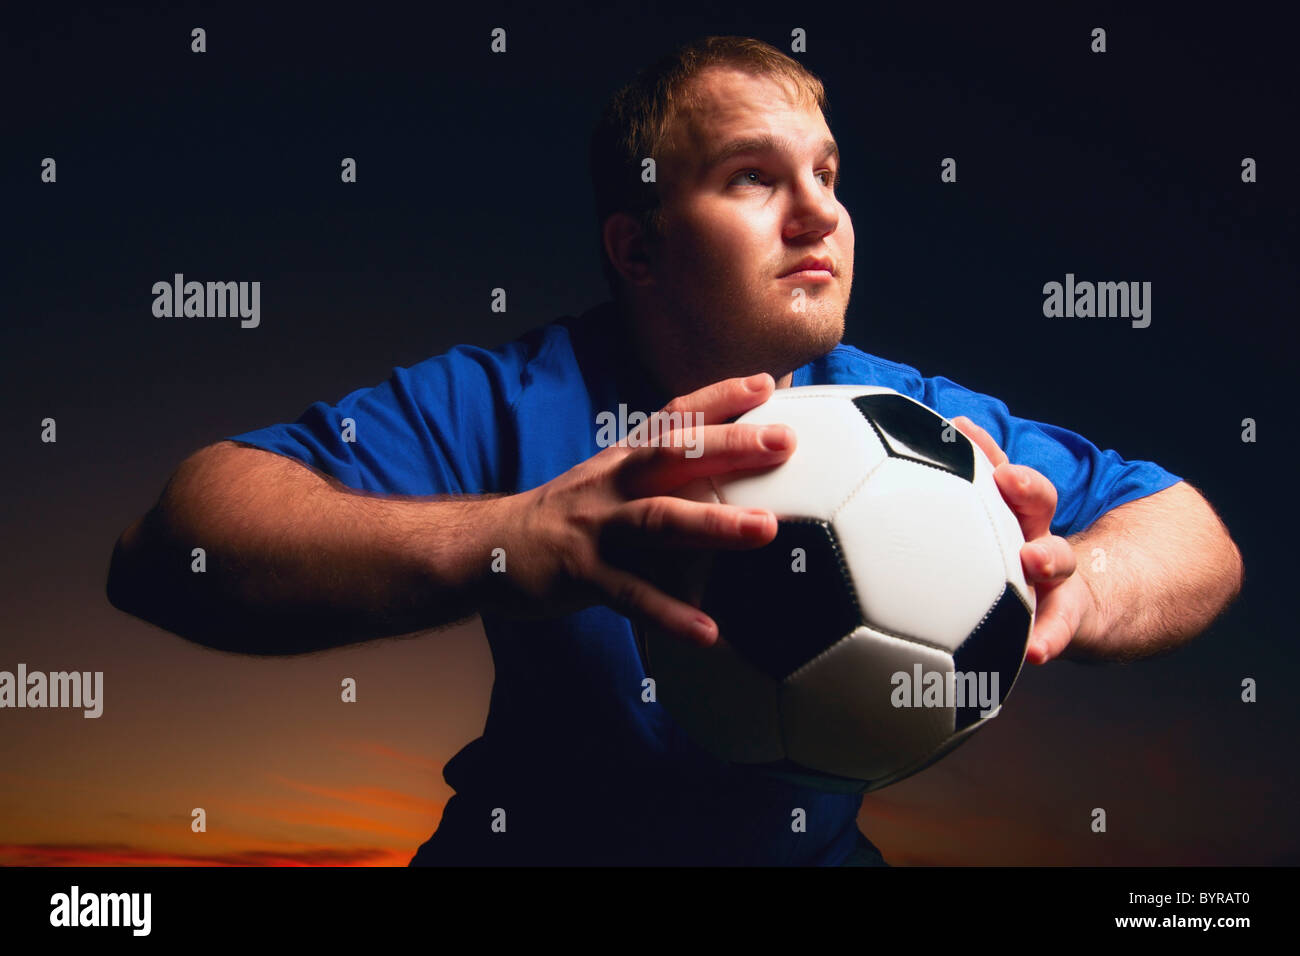 a young man with a soccer ball; wilmar, minnesota, united states of america - Stock Image